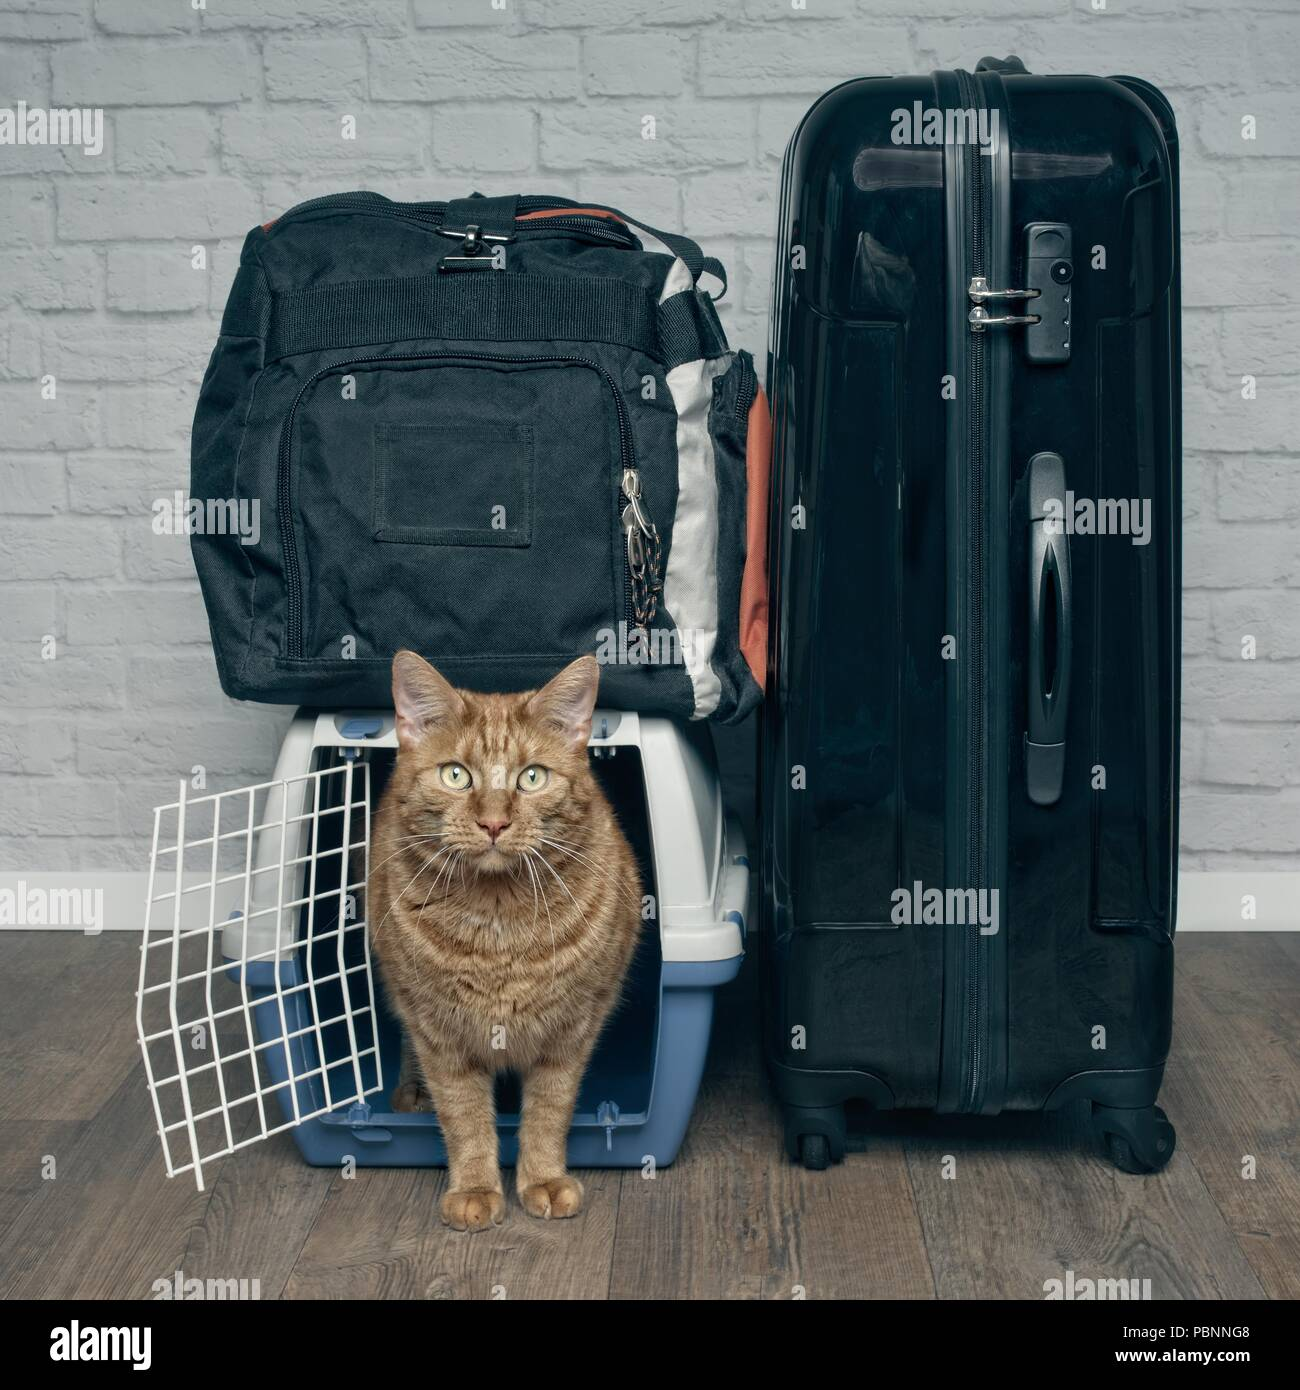 Traveling with a cat - ginger cat looking anxiously from a pet carrier next to a suitcase. - Stock Image